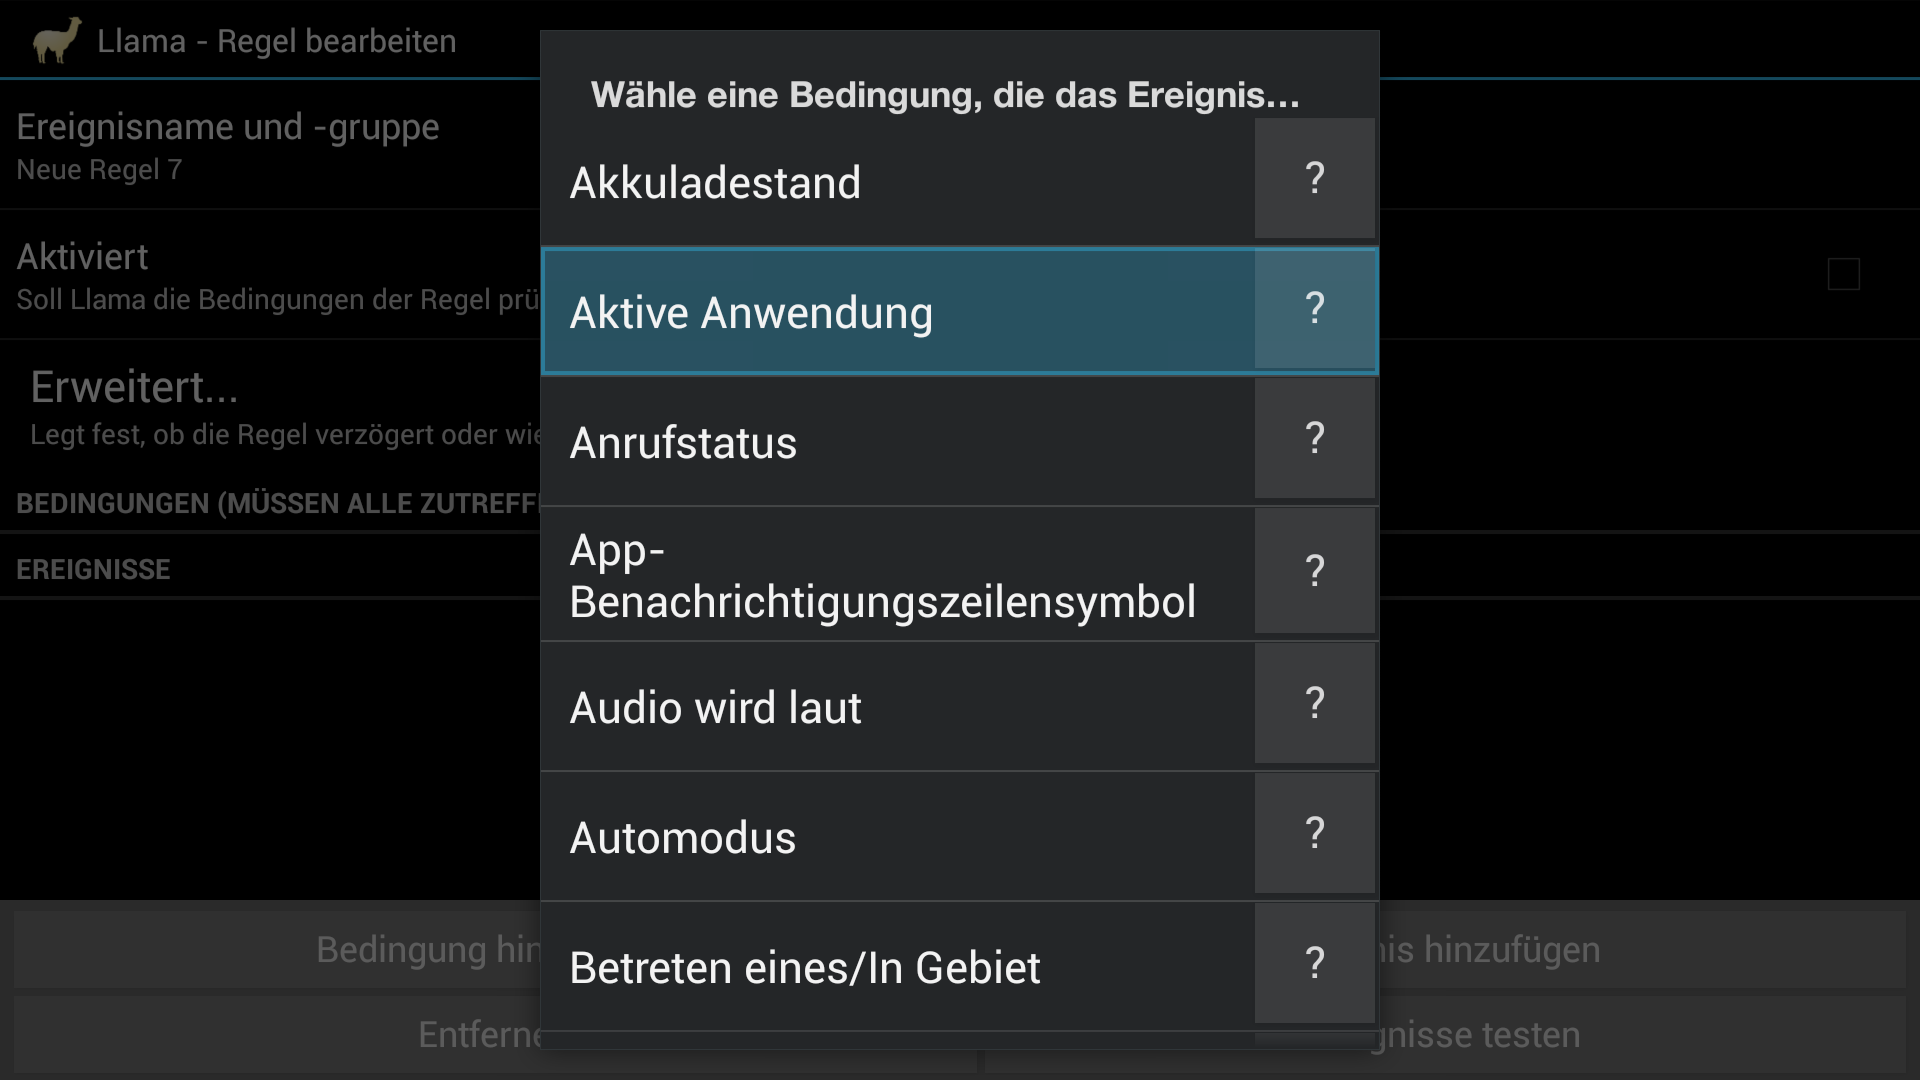 Workshop: Amazons Fire TV wird zur Multimedia-Zentrale - Neue Bedingung in Llama anlegen. (Screenshot: Golem.de)